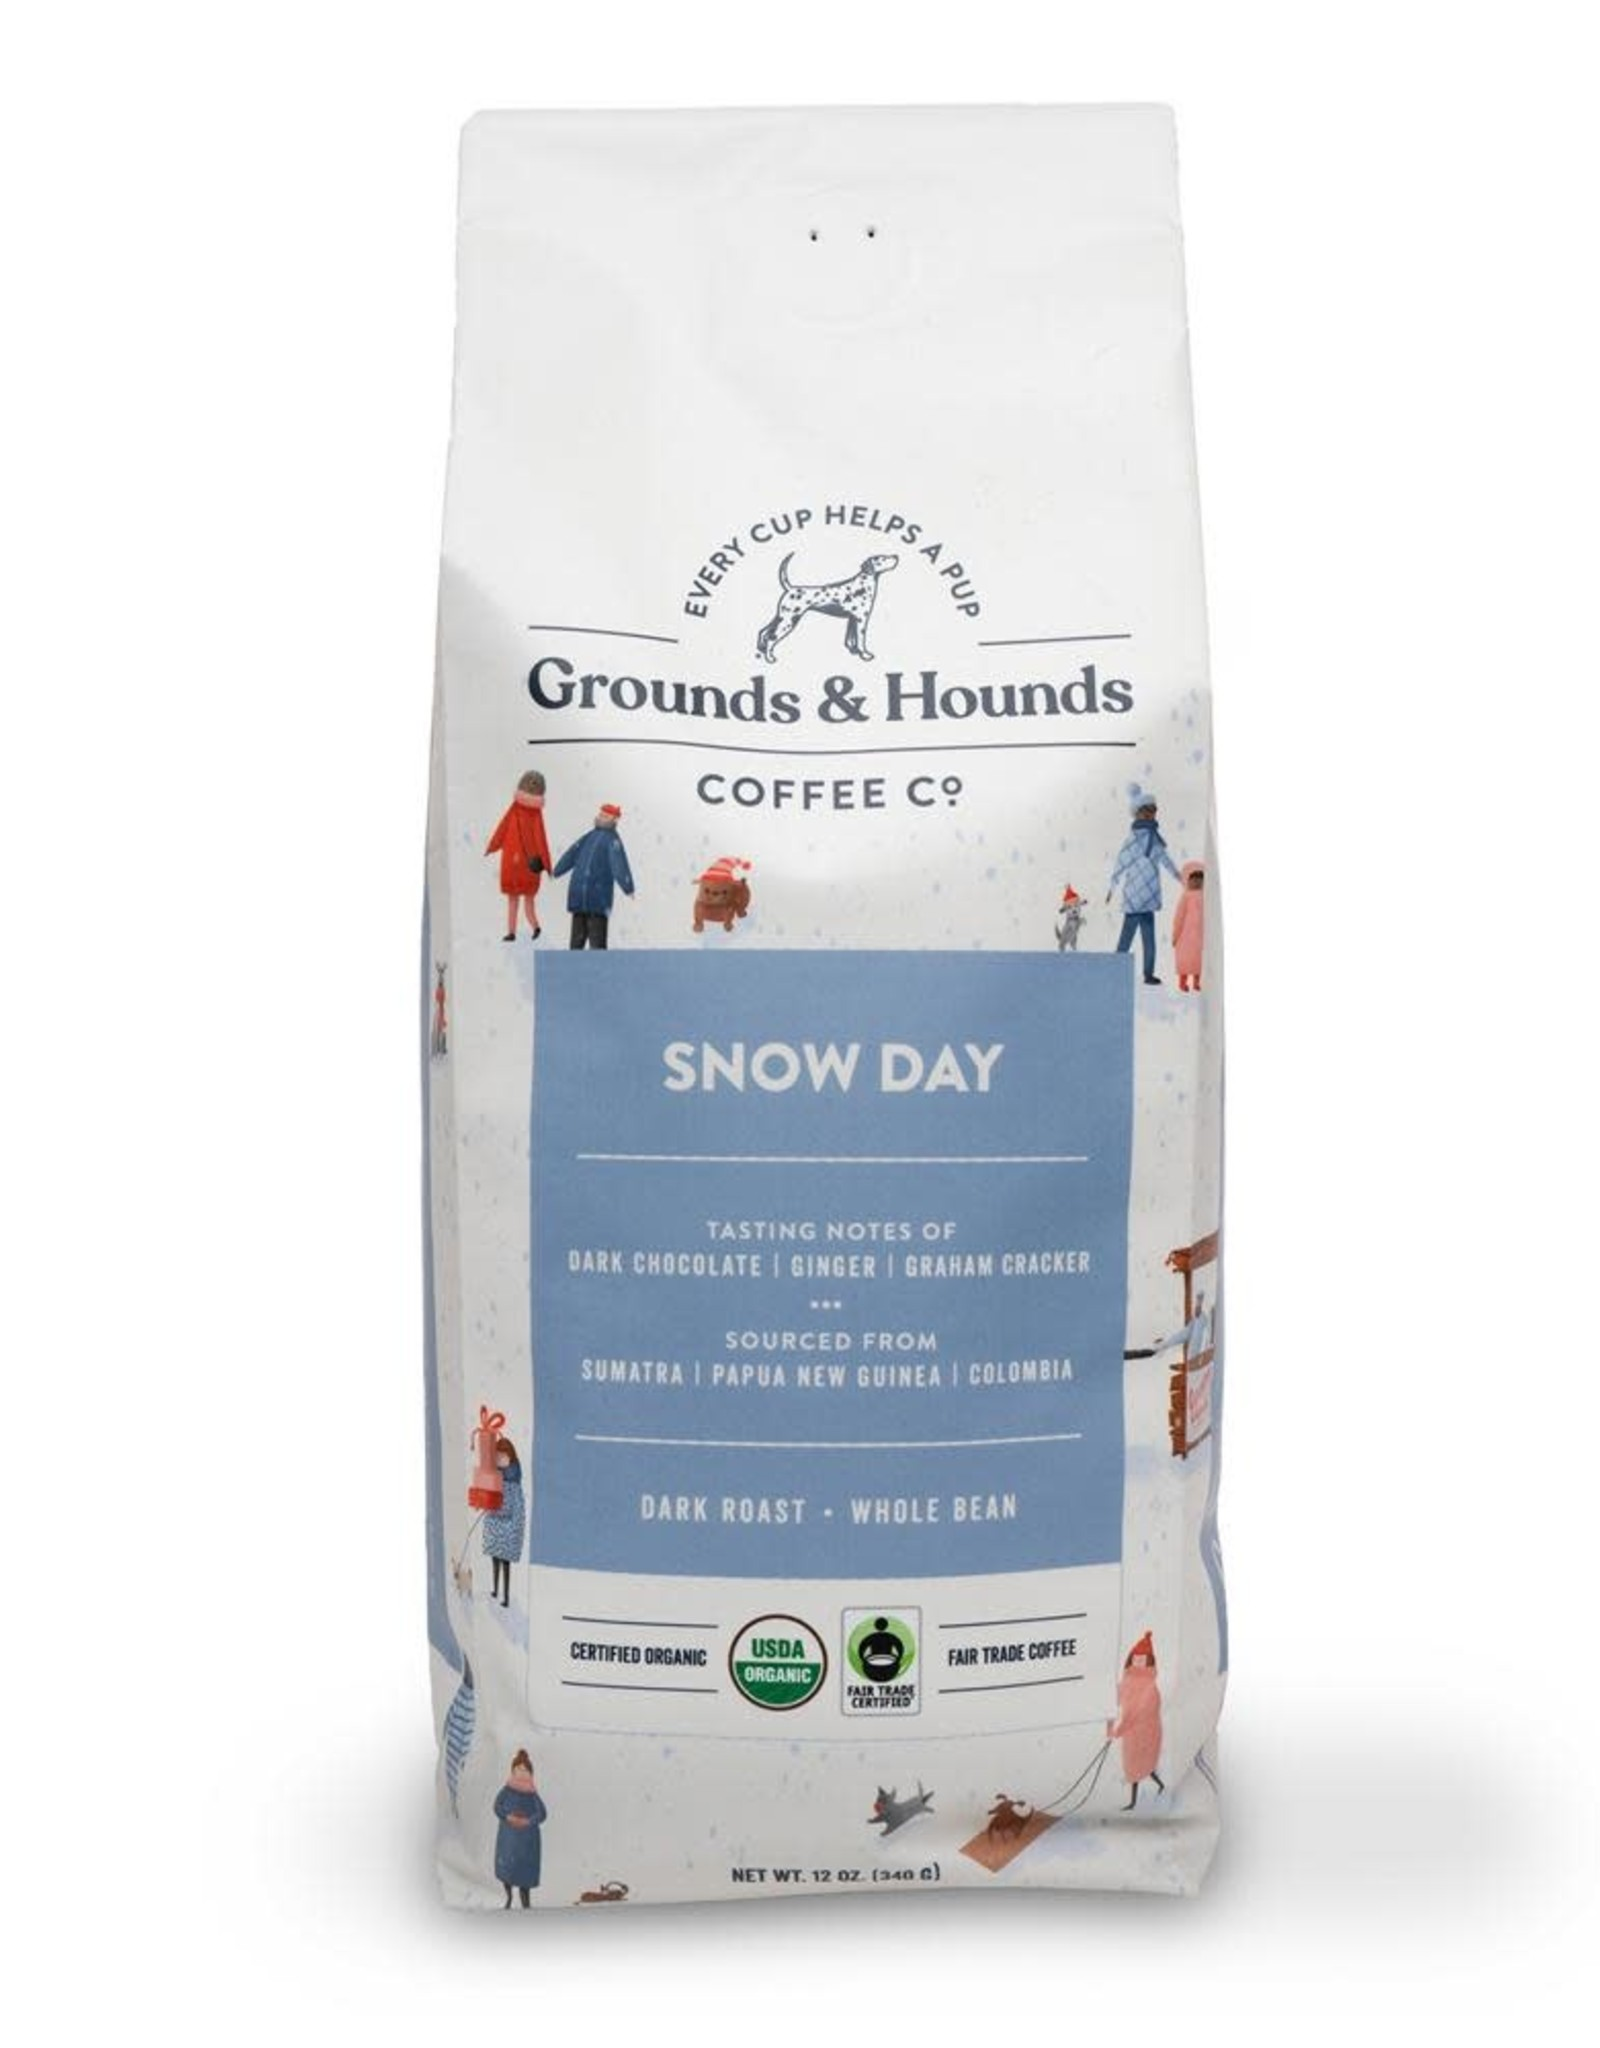 Grounds & Hounds Whole Bean Coffee